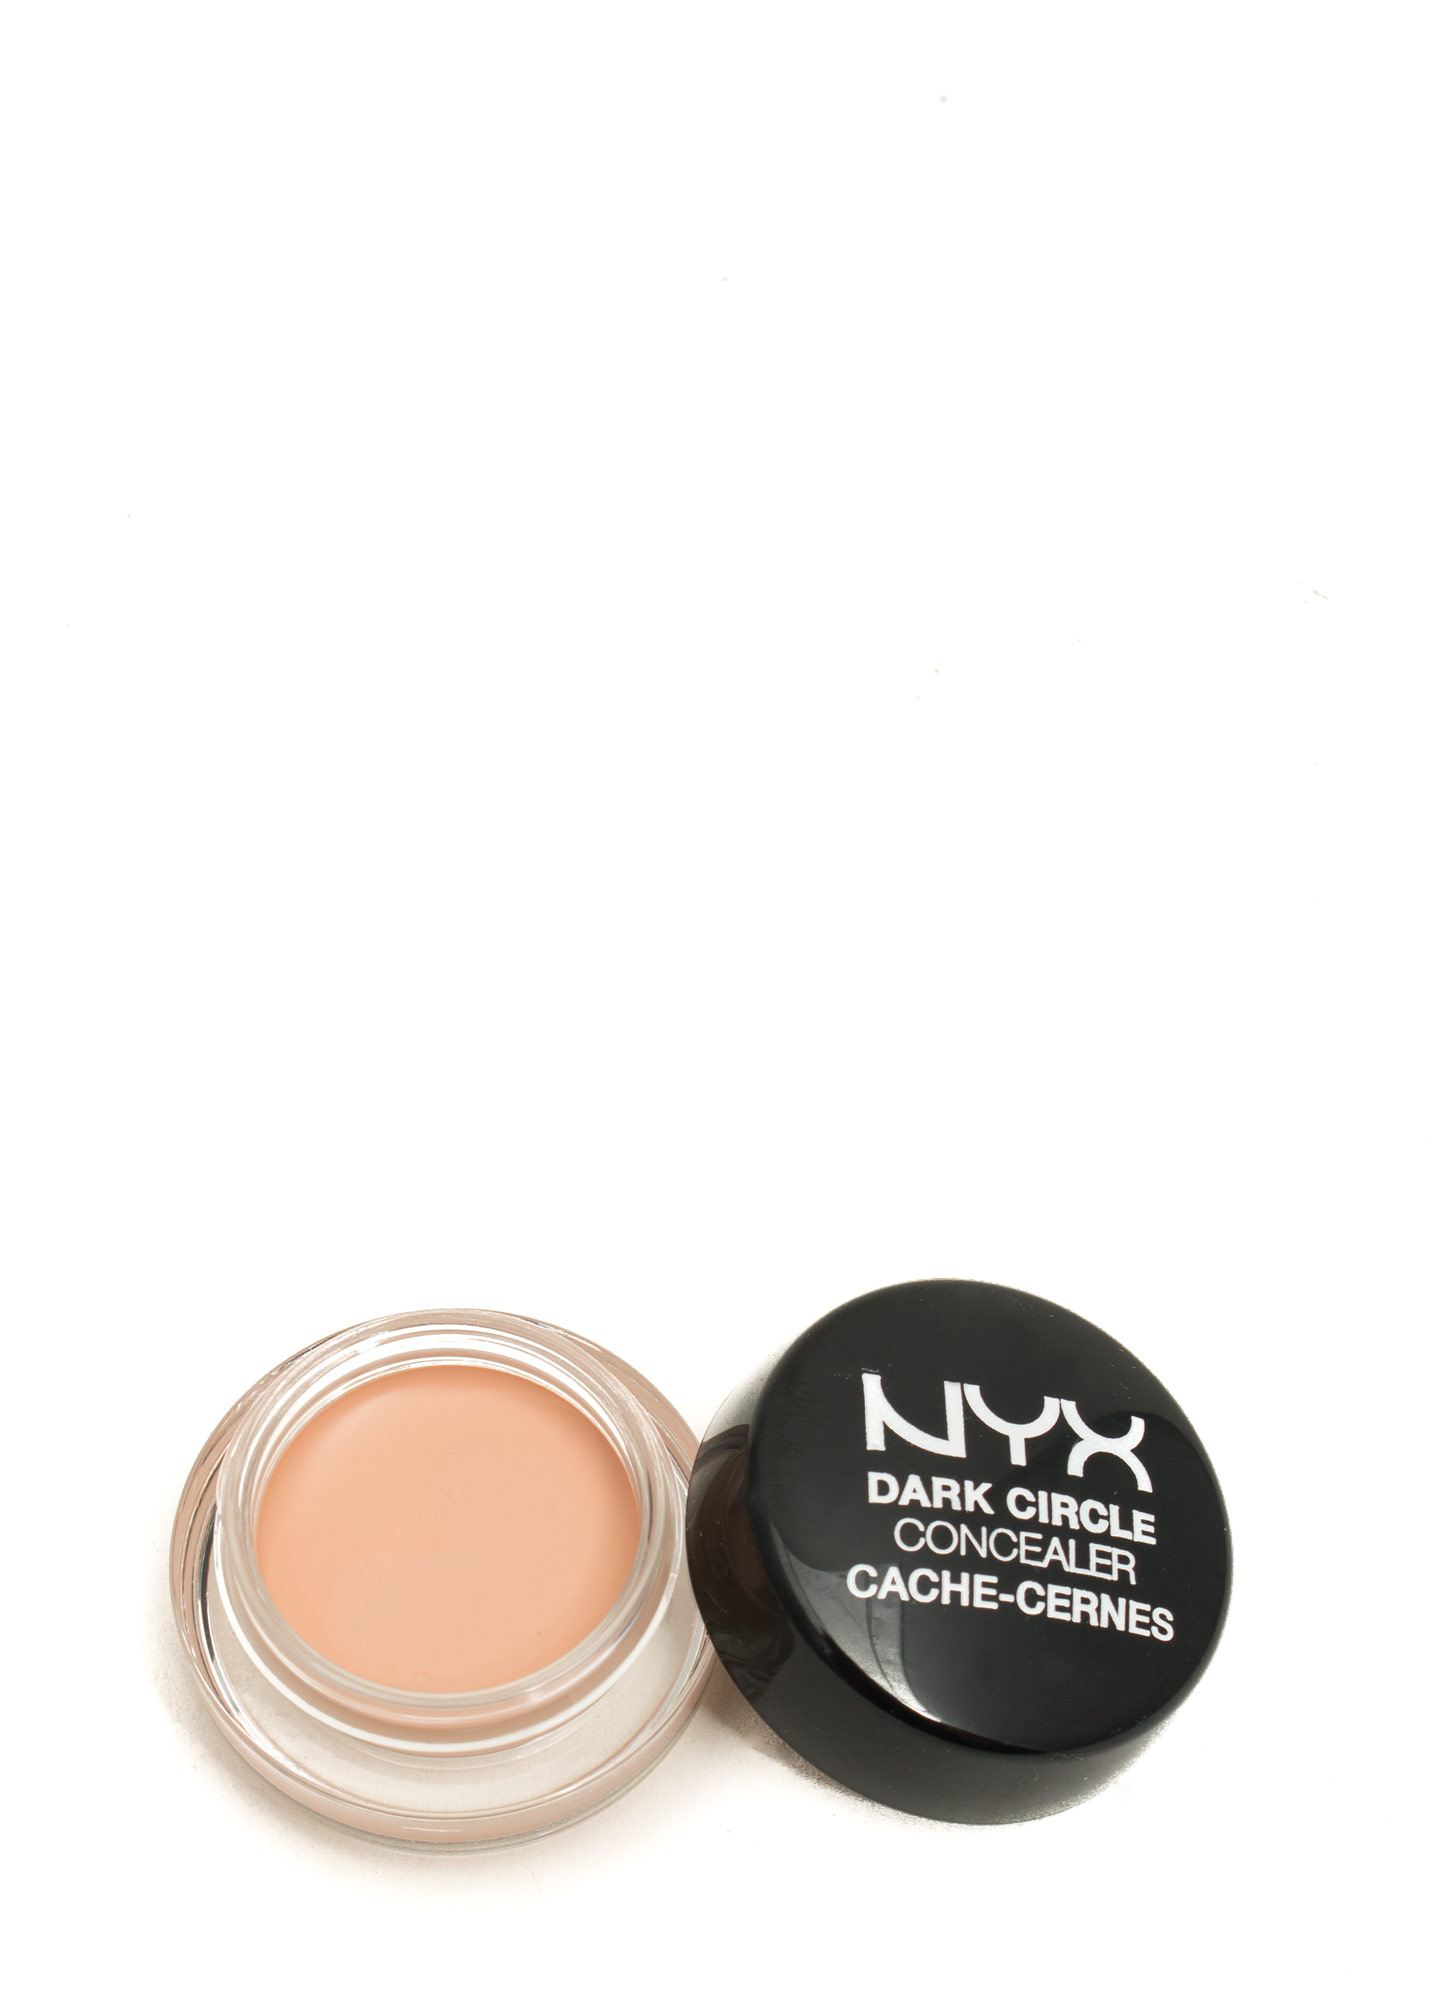 NYX Dark Circle Concealer FAIR (Final Sale)